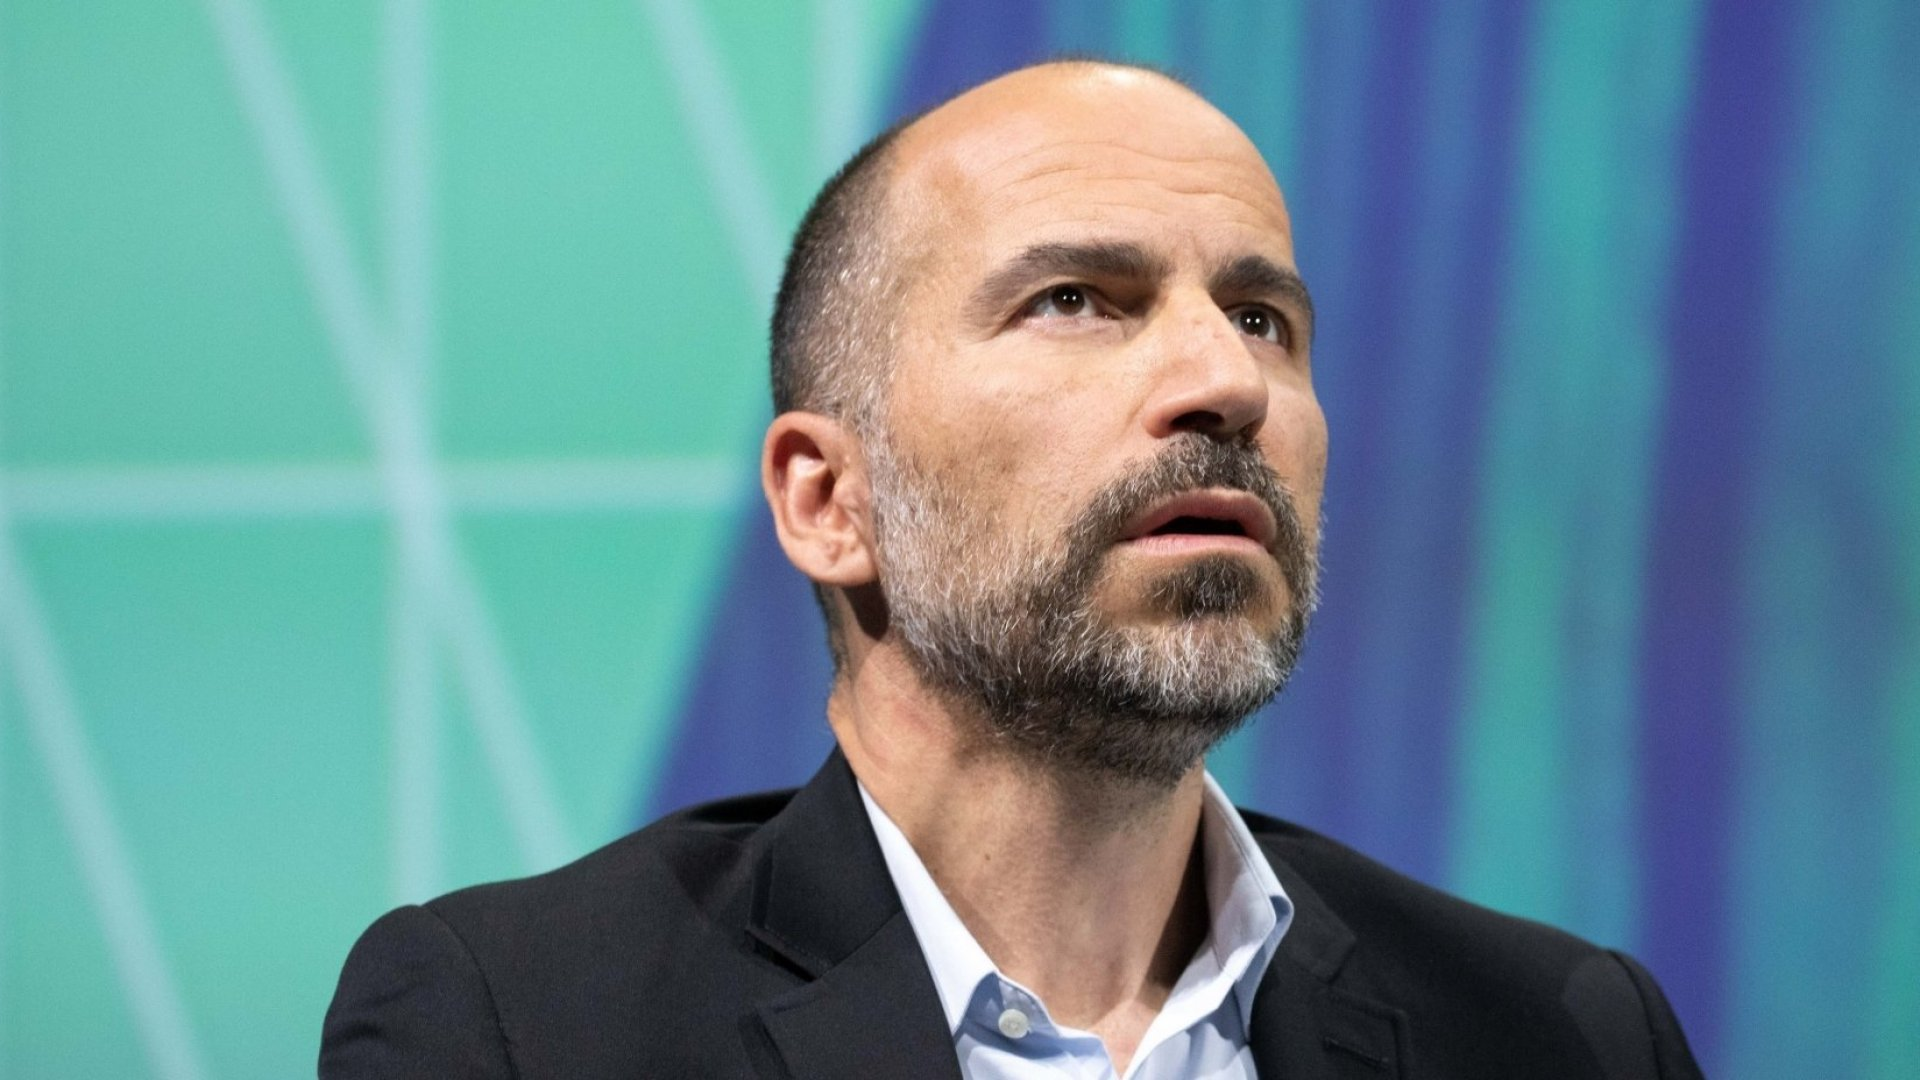 Uber's IPO Prospectus Says the Company May Never Be Profitable